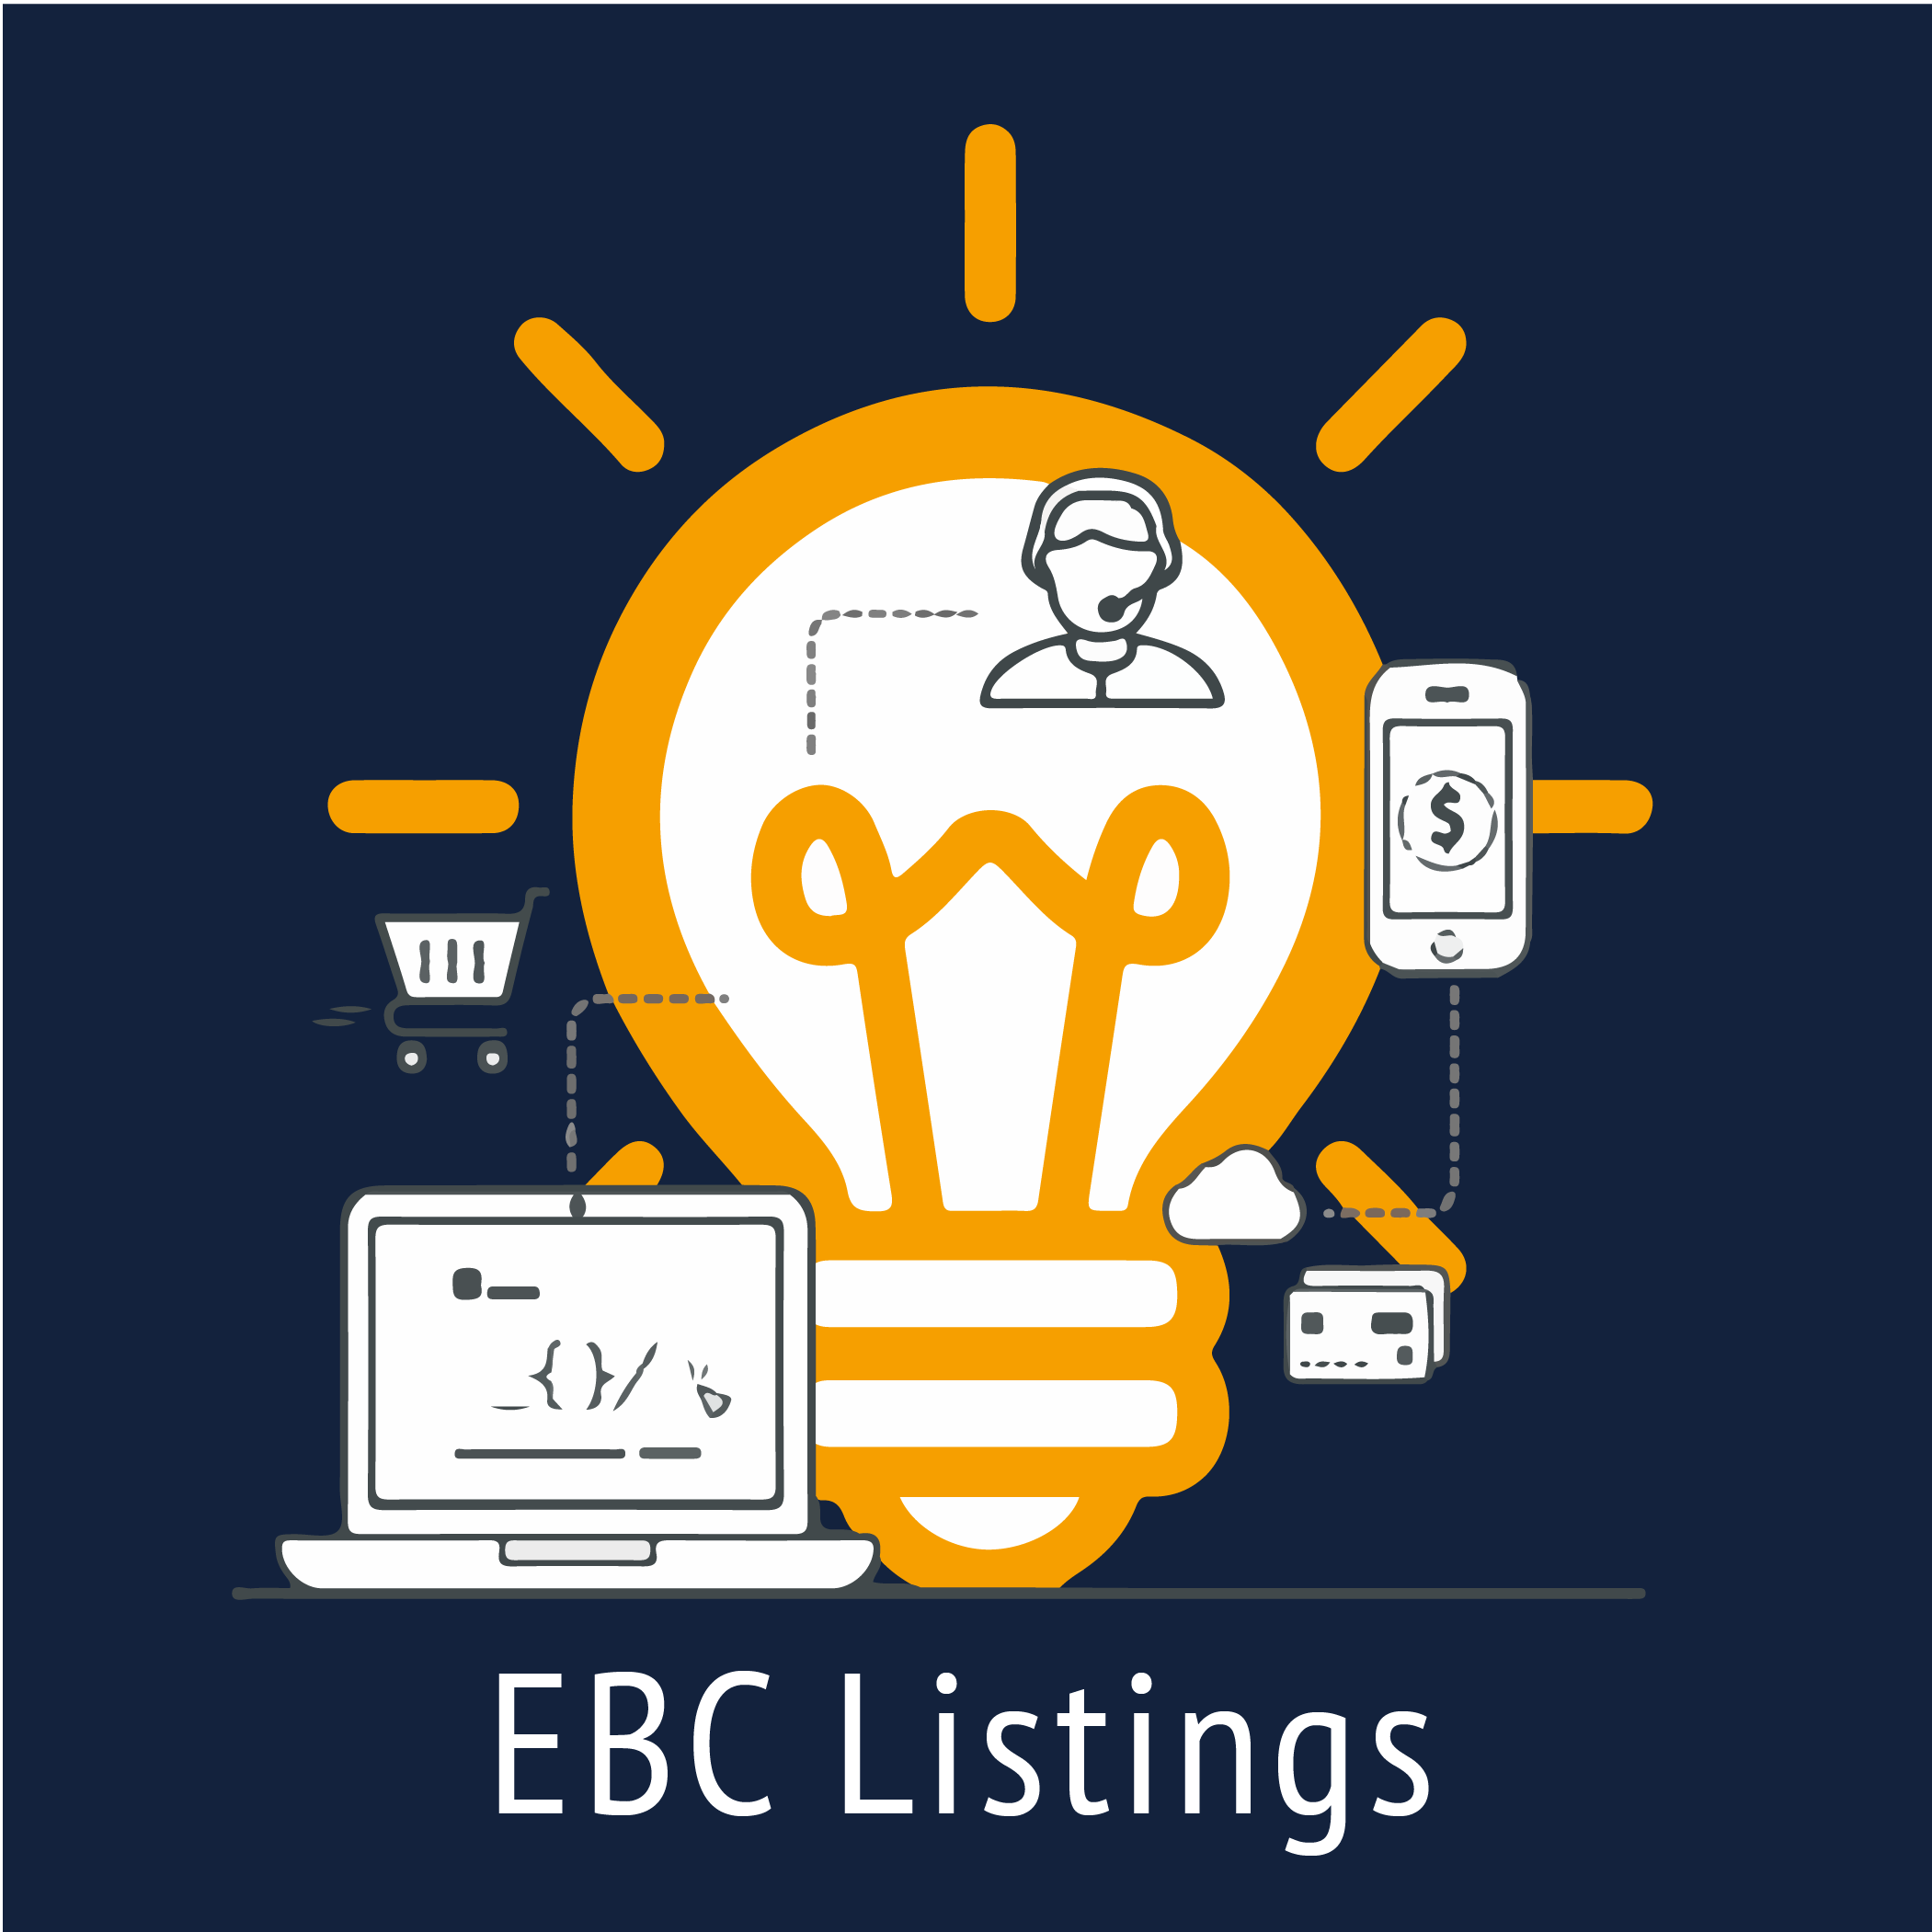 EBC Listing B2B service from Marketing by Emma's Emmazon